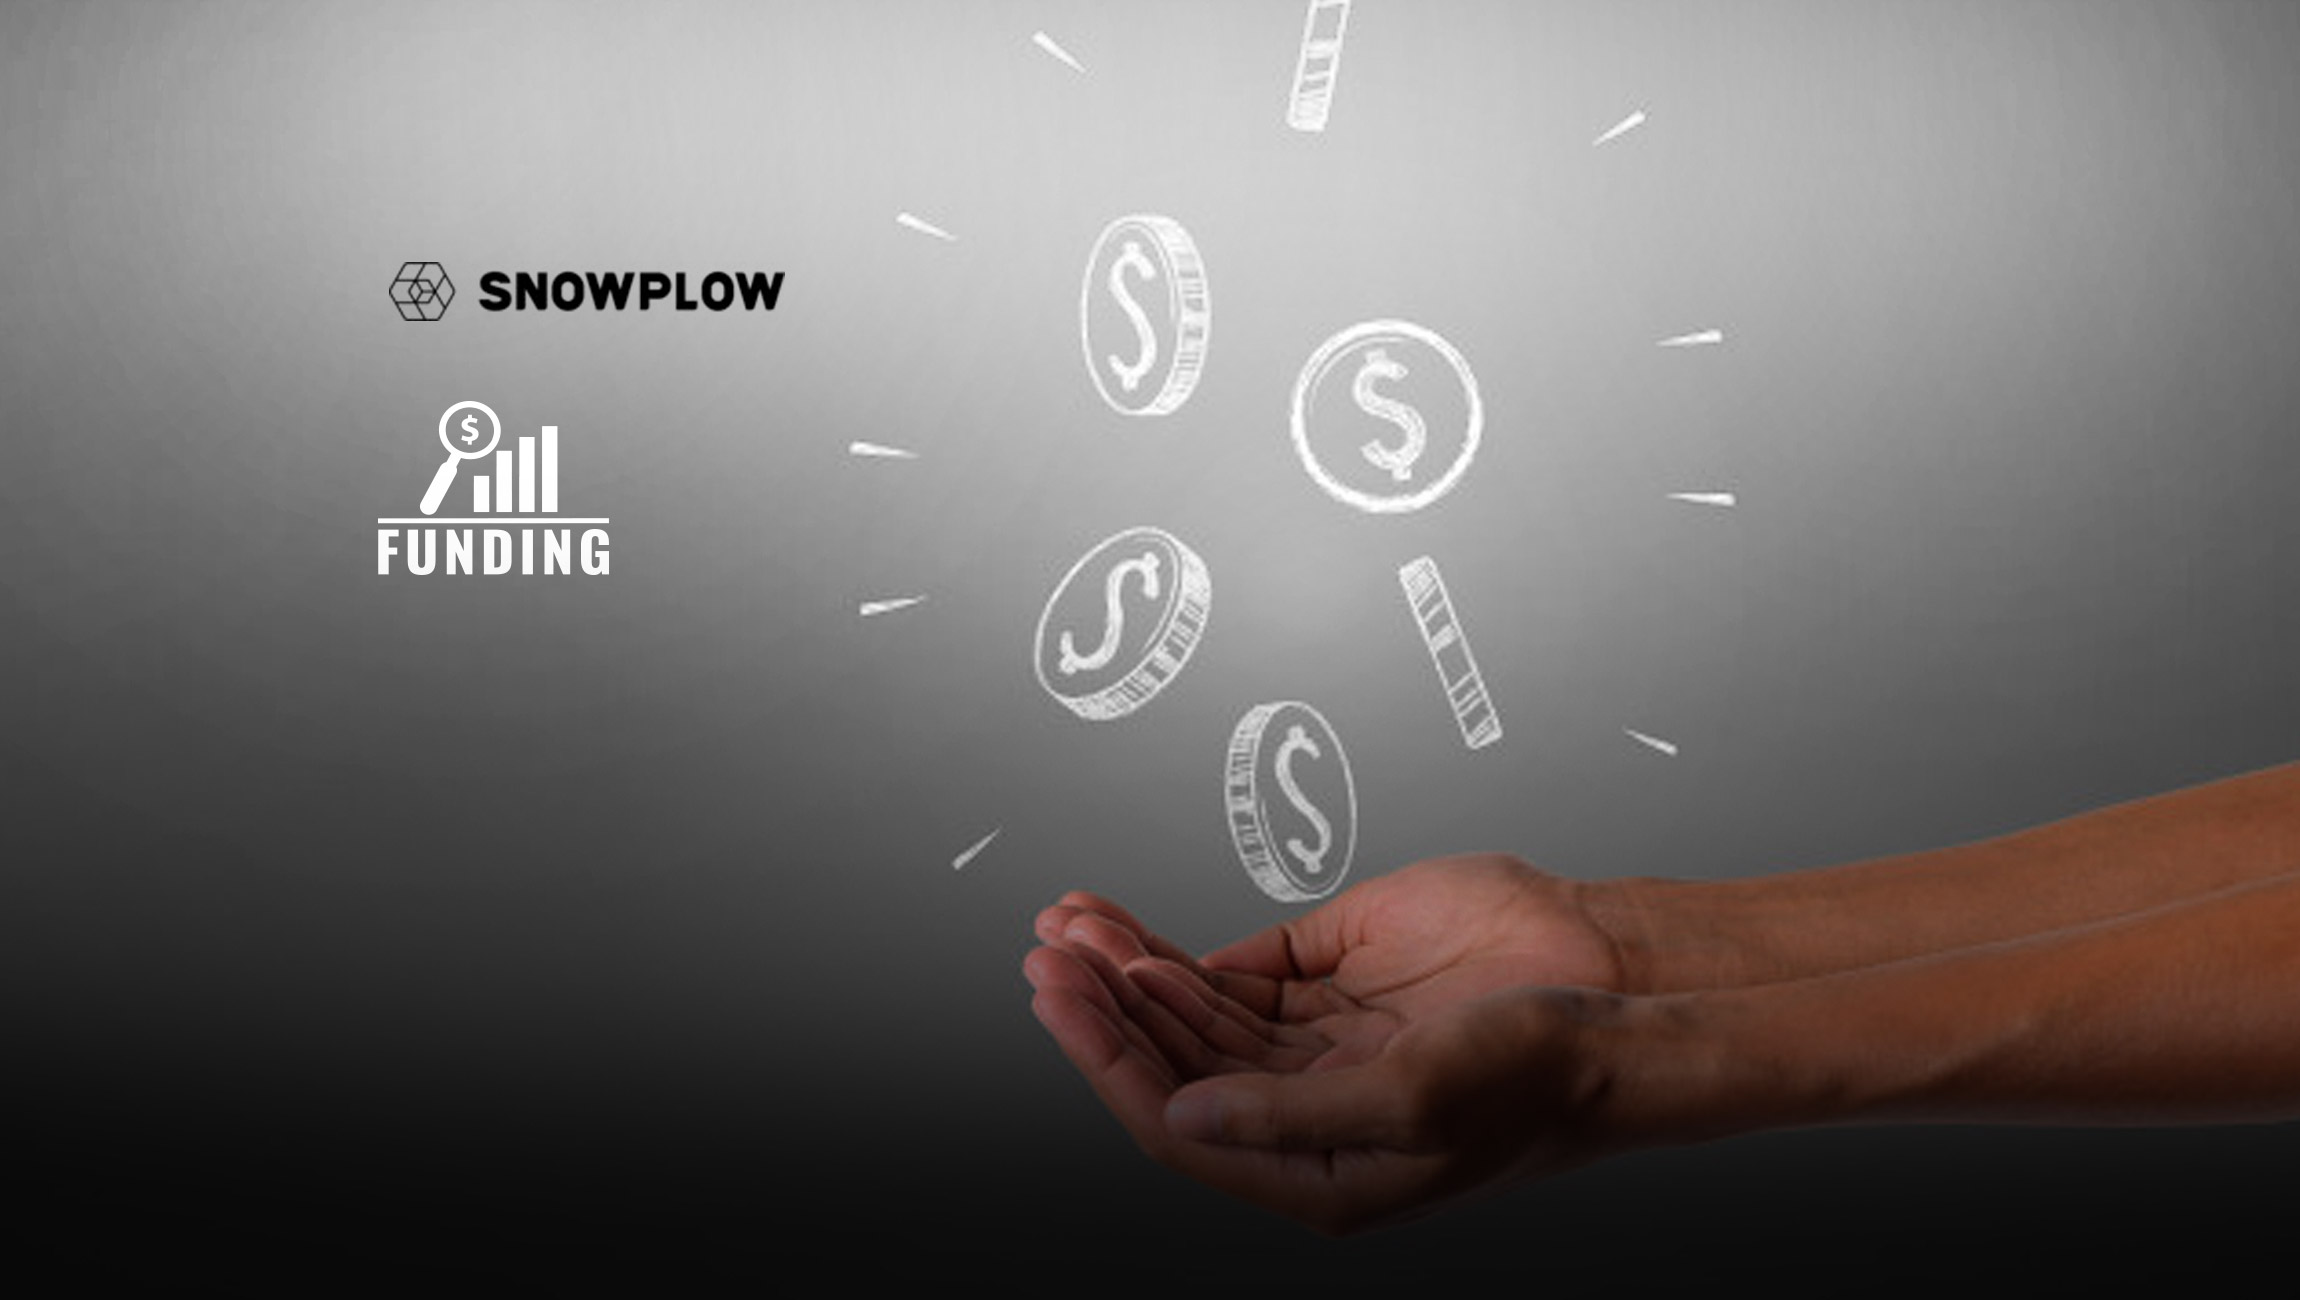 Snowplow-Analytics-raises-_10-million-in-Series-A2-funding